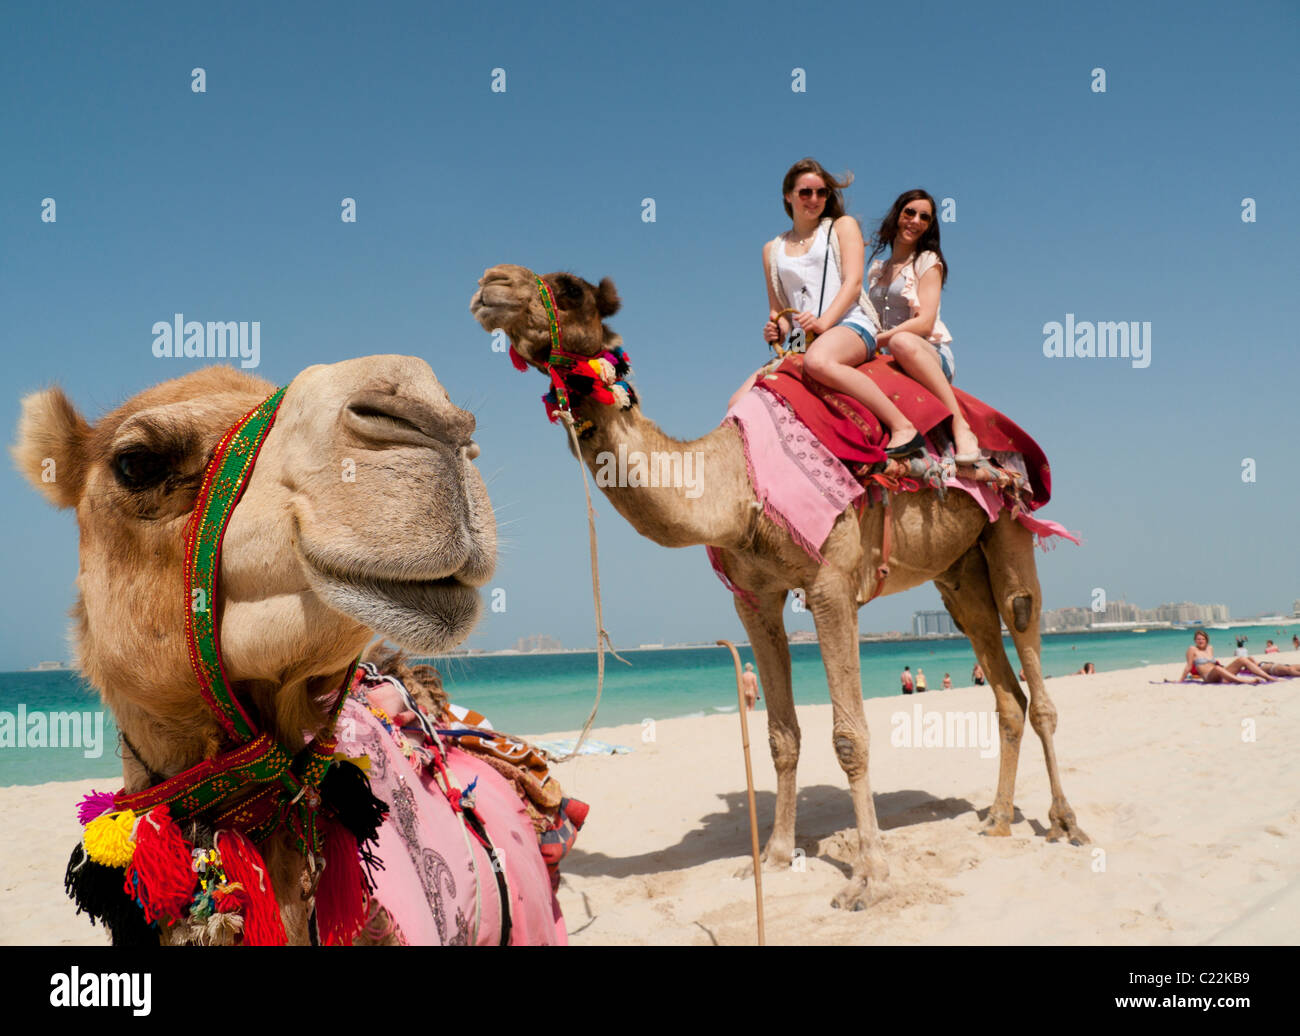 Two tourists having a camel ride on the beach in dubai in the uae two tourists having a camel ride on the beach in dubai in the uae thecheapjerseys Images